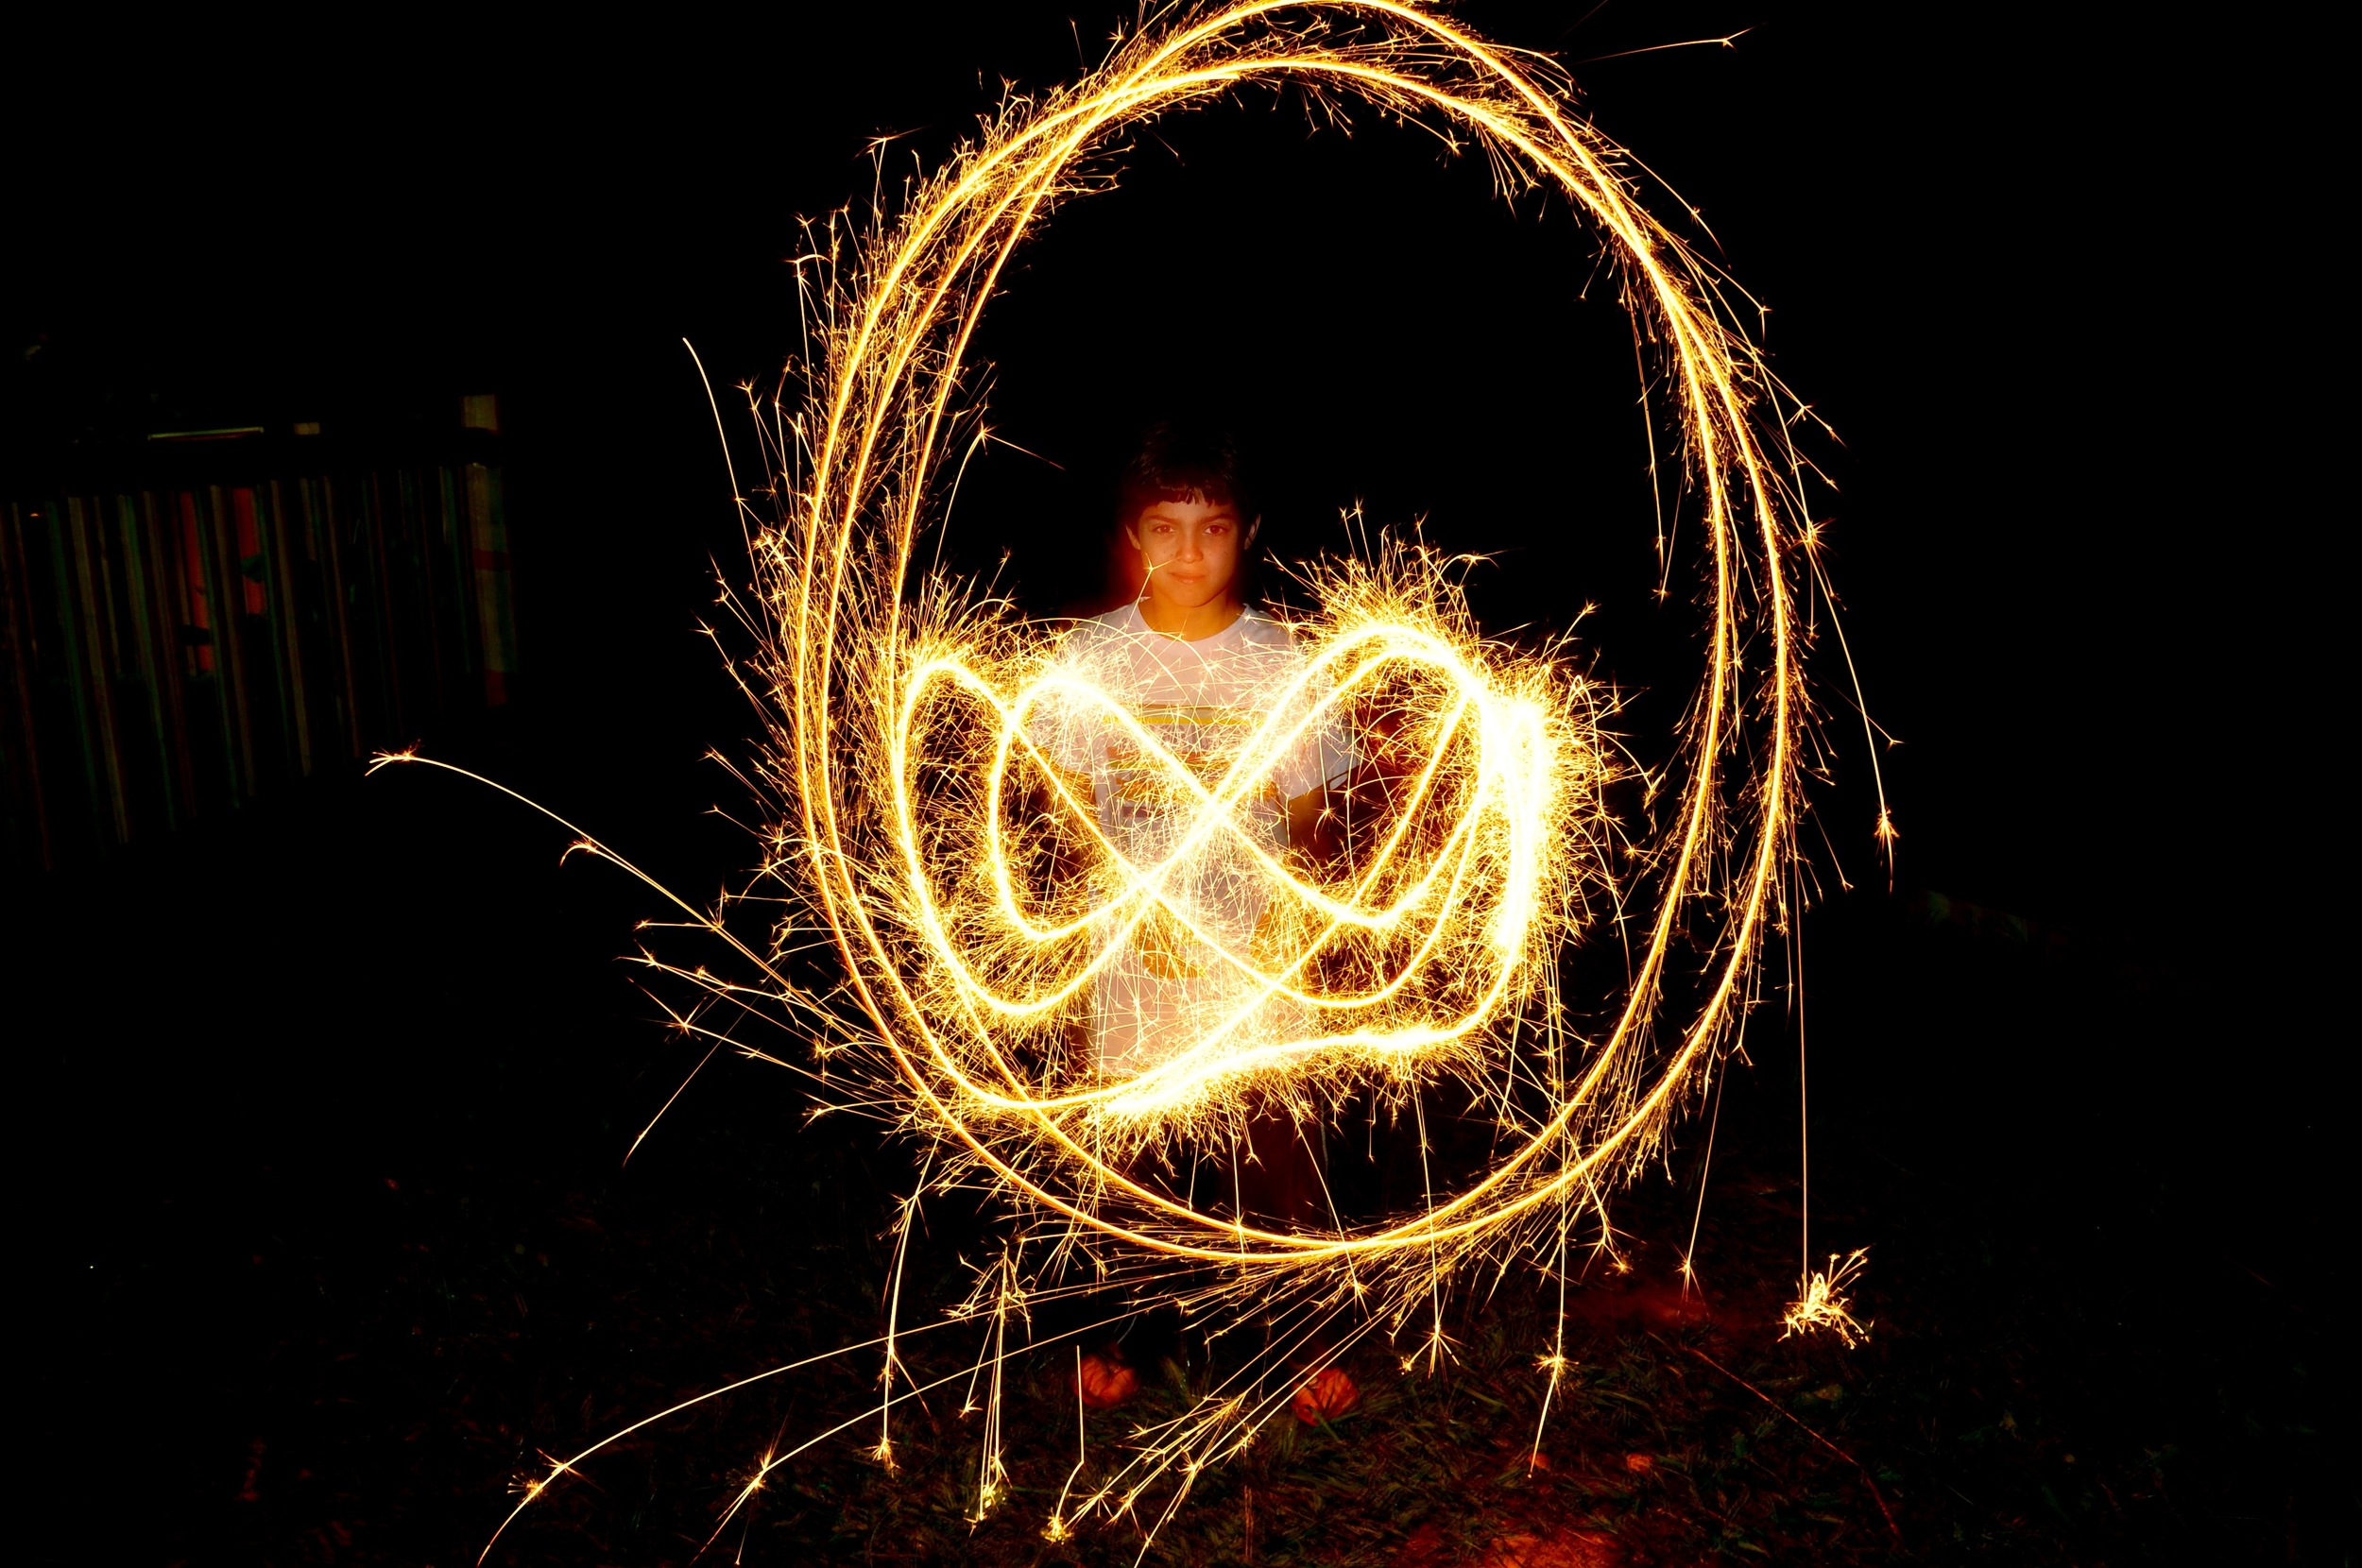 the-campers-learned-about-exposure-and-shutter-speed-at-the-camp-fire-on-saturday-night-and-make-pictures-with-sparklers.jpg